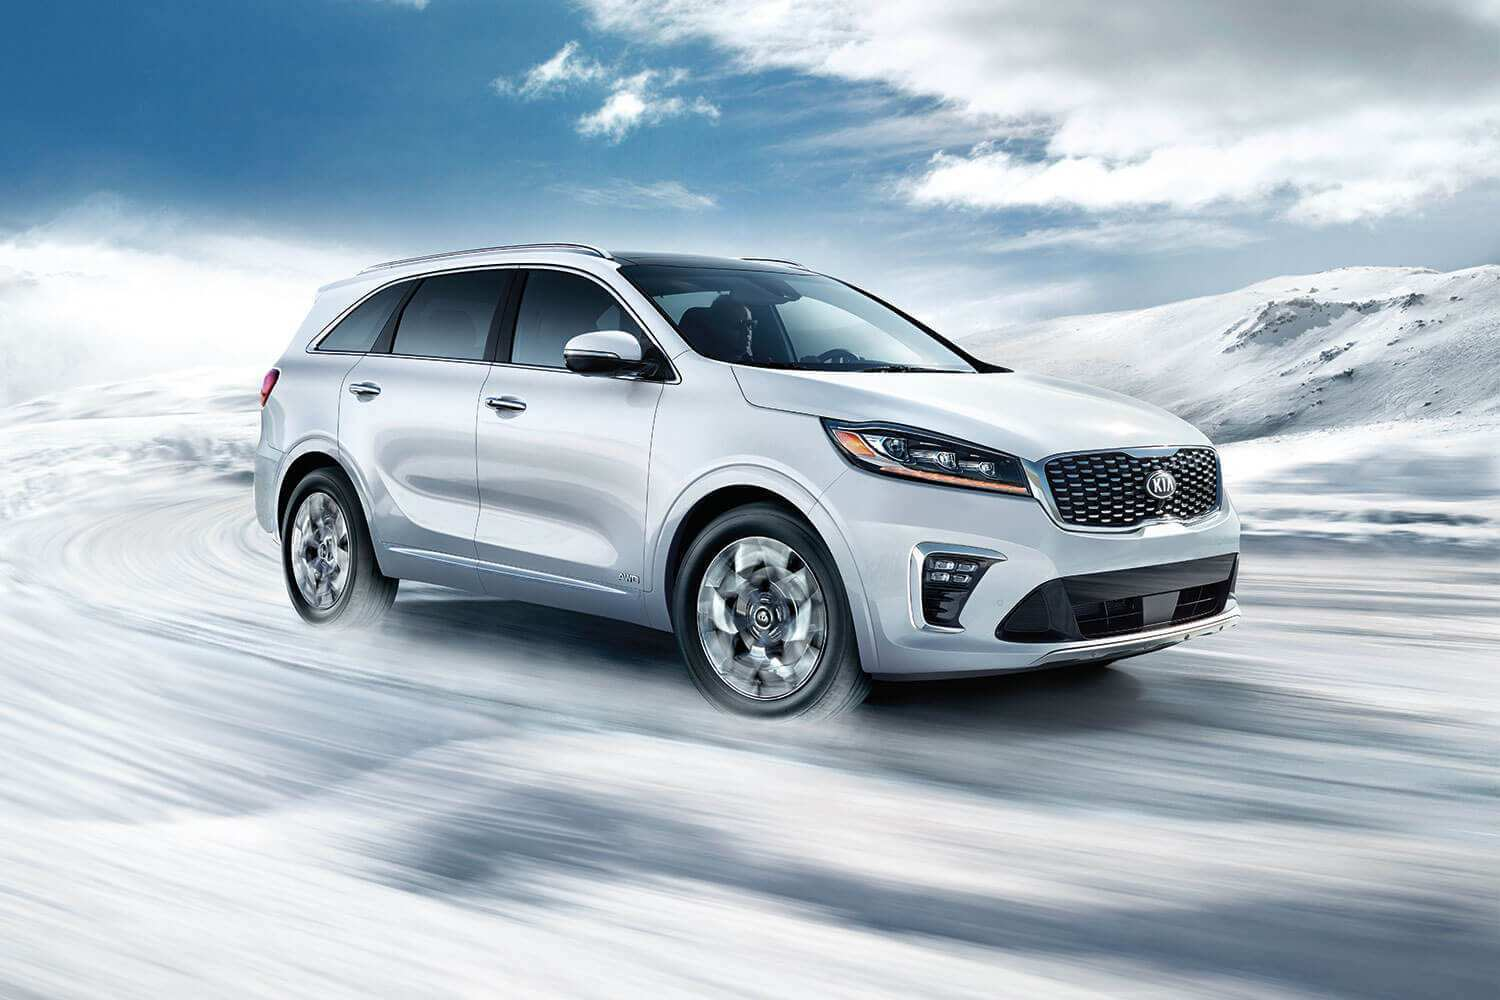 38 A 2019 Kia Sorento Owners Manual Interior